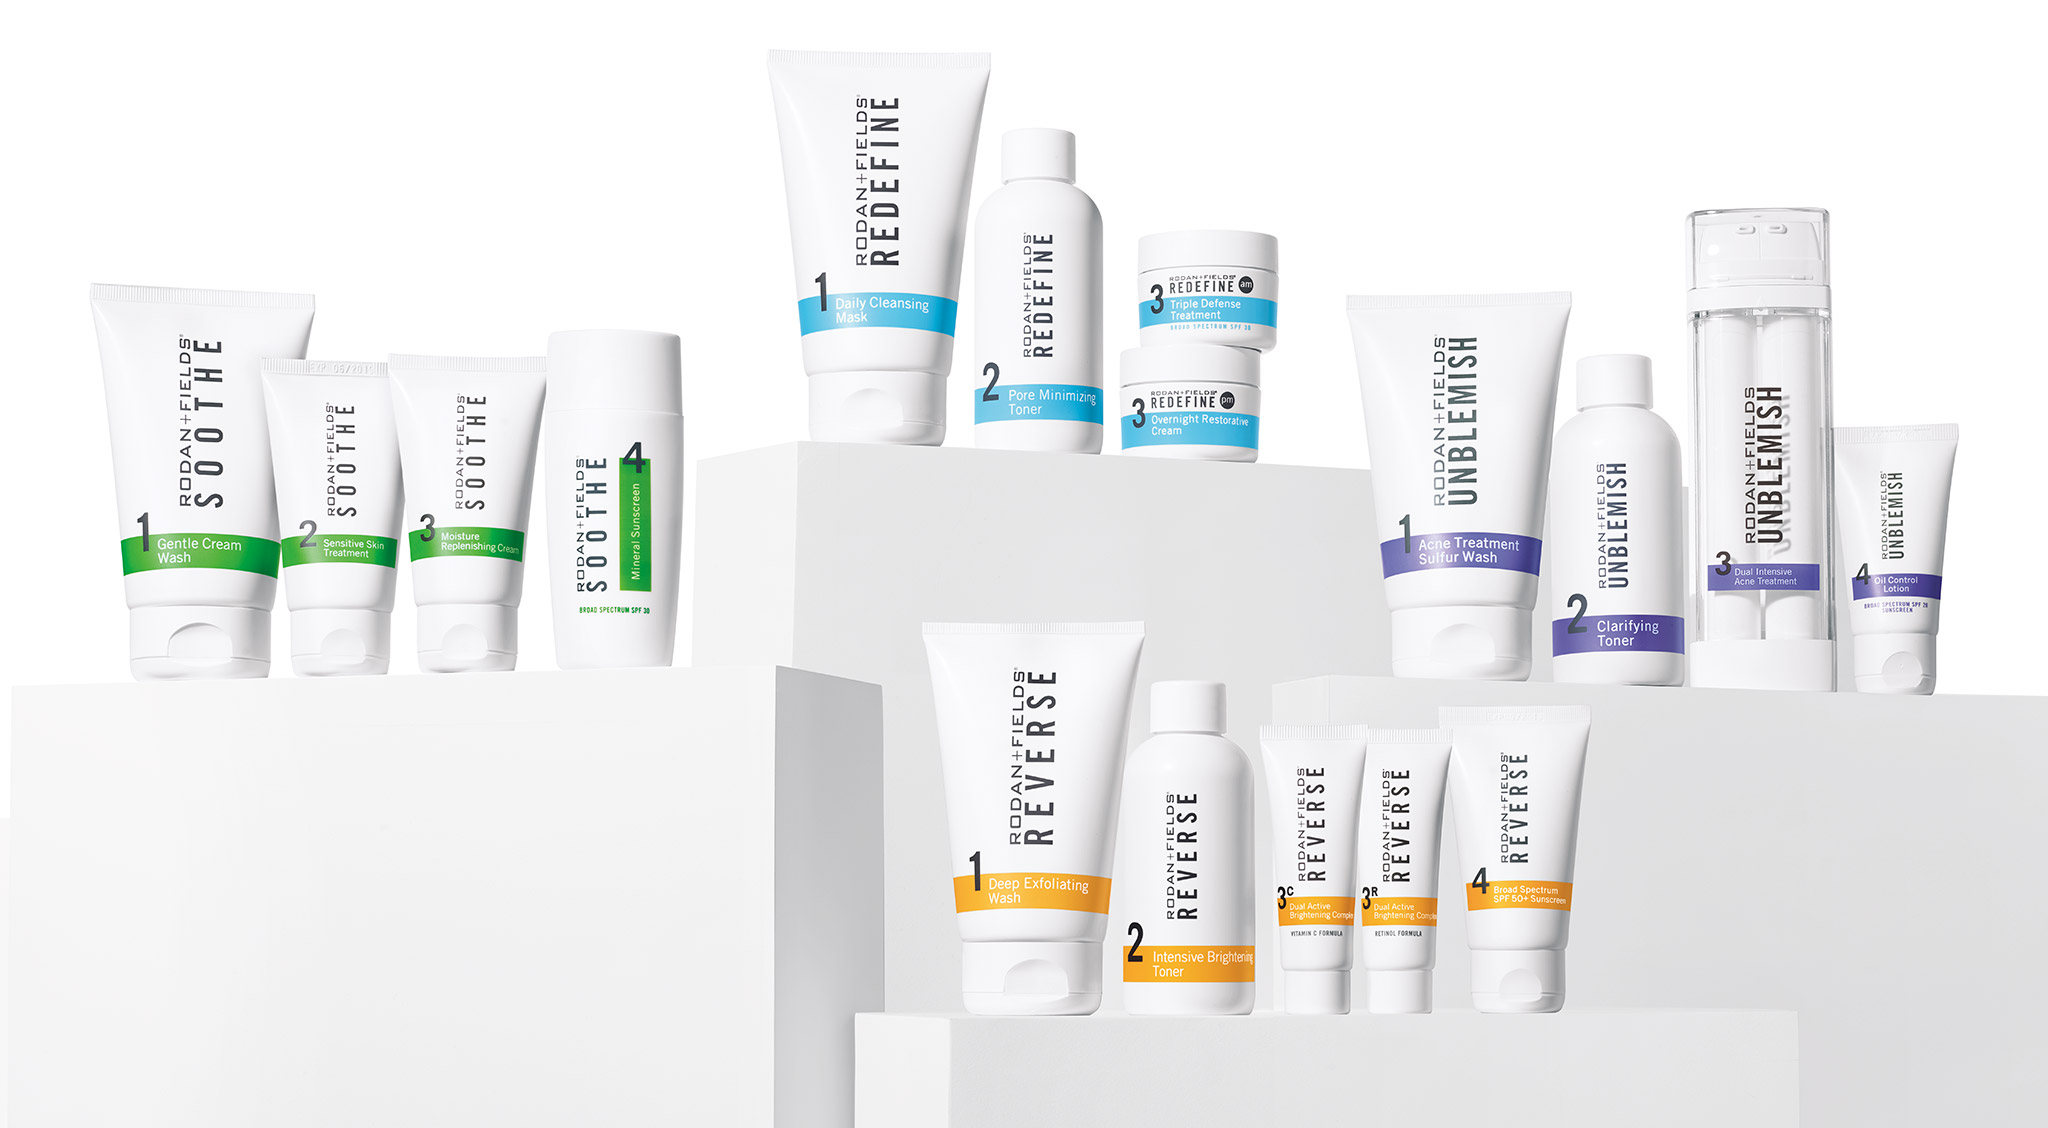 lp-regimen-reboot-products-banner.jpg